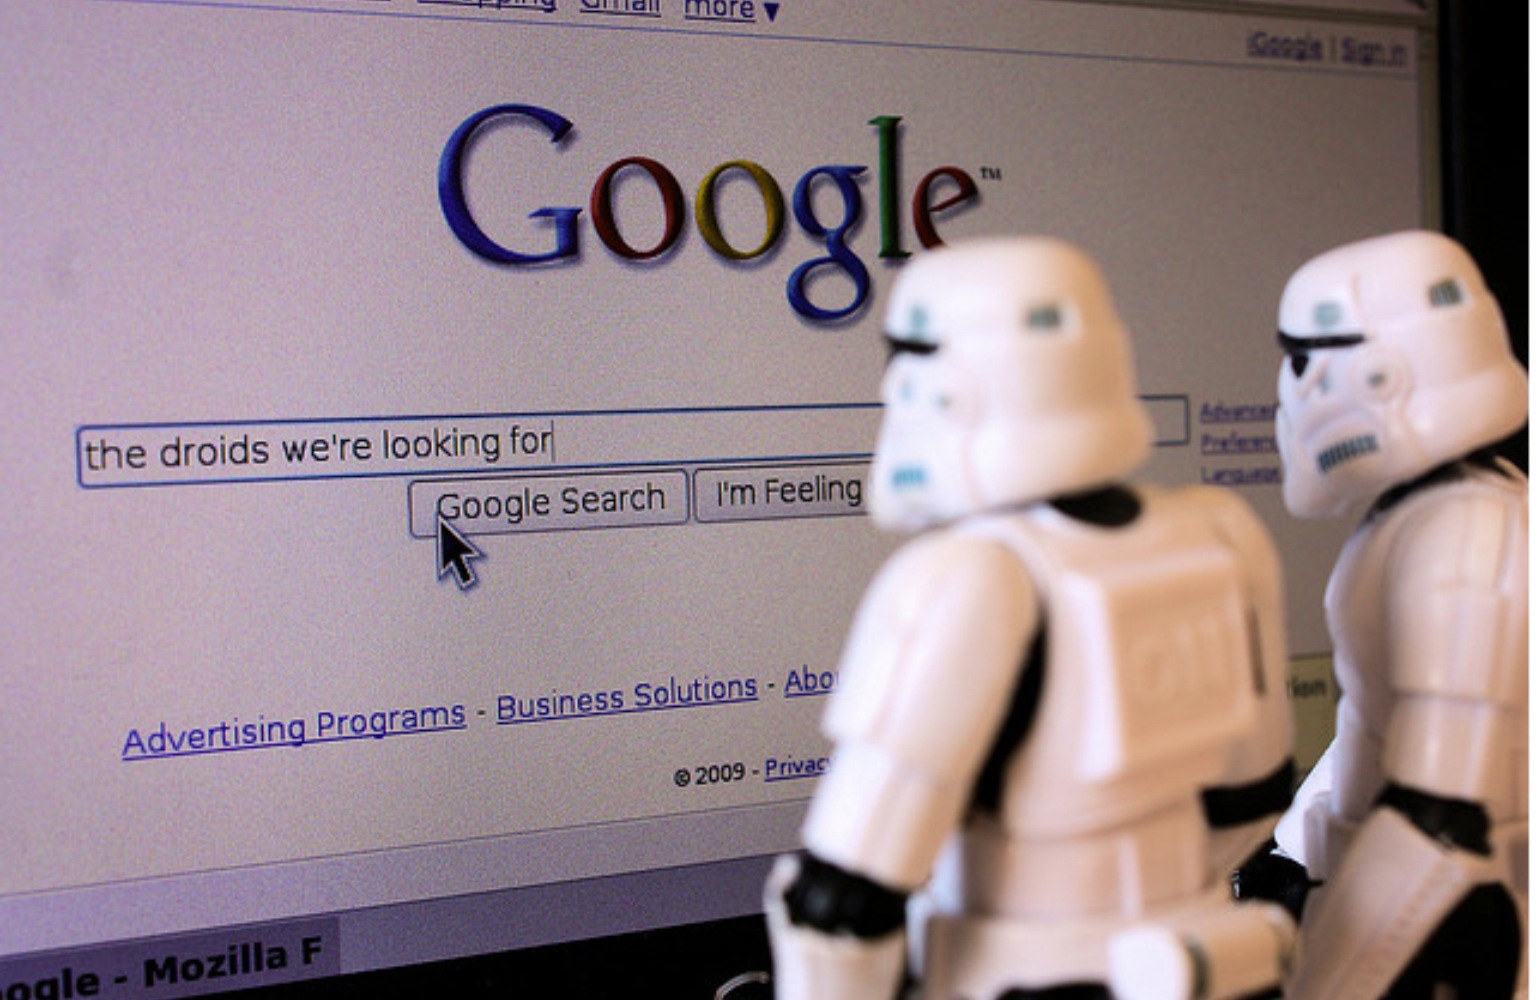 google-is-pushing-to-encrypt-more-of-its-services-image-cultofandroidcomwp-contentuploads201511star-wars-humour-the-droids-were-looking-for-stormtroopers-use-google-search-jpg